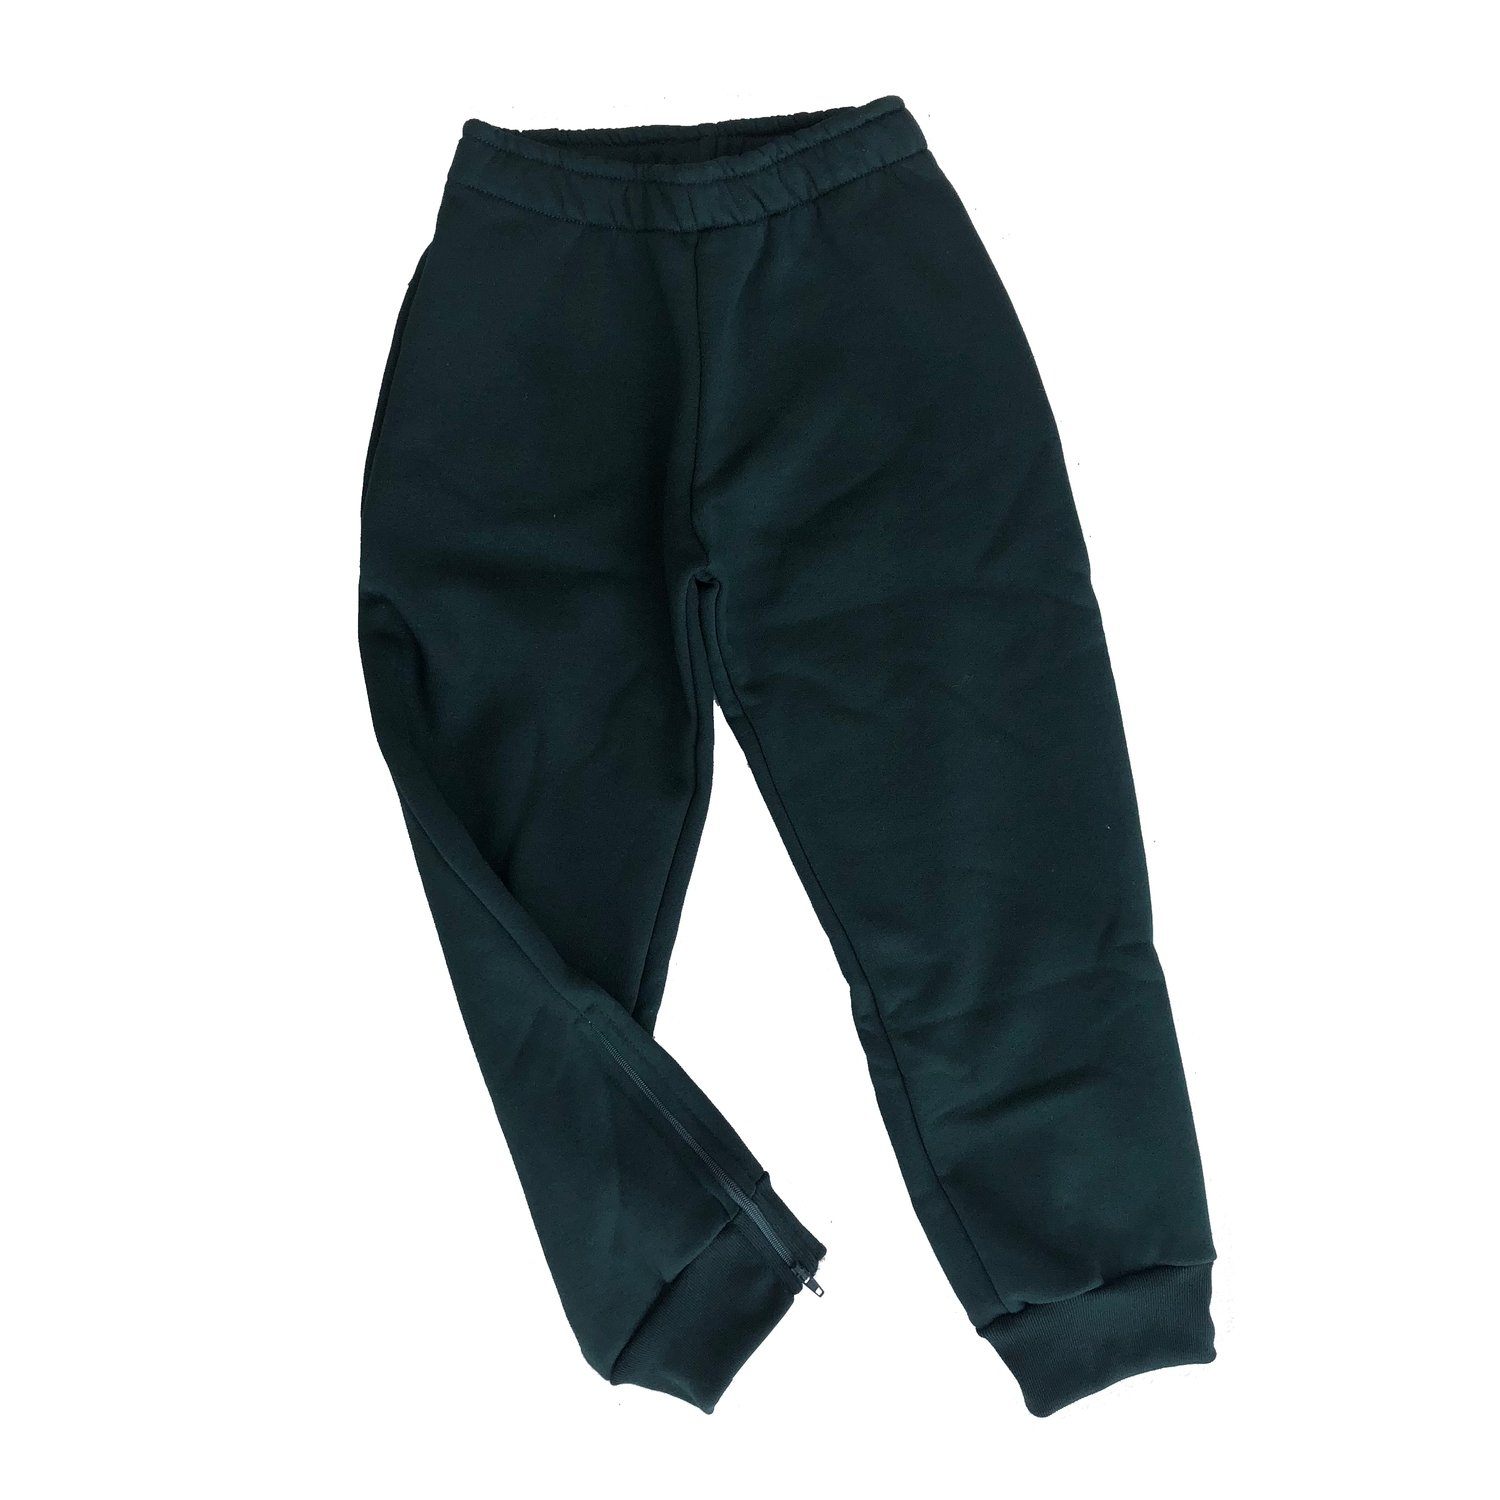 Scotchie trackpants (with ankle zips)